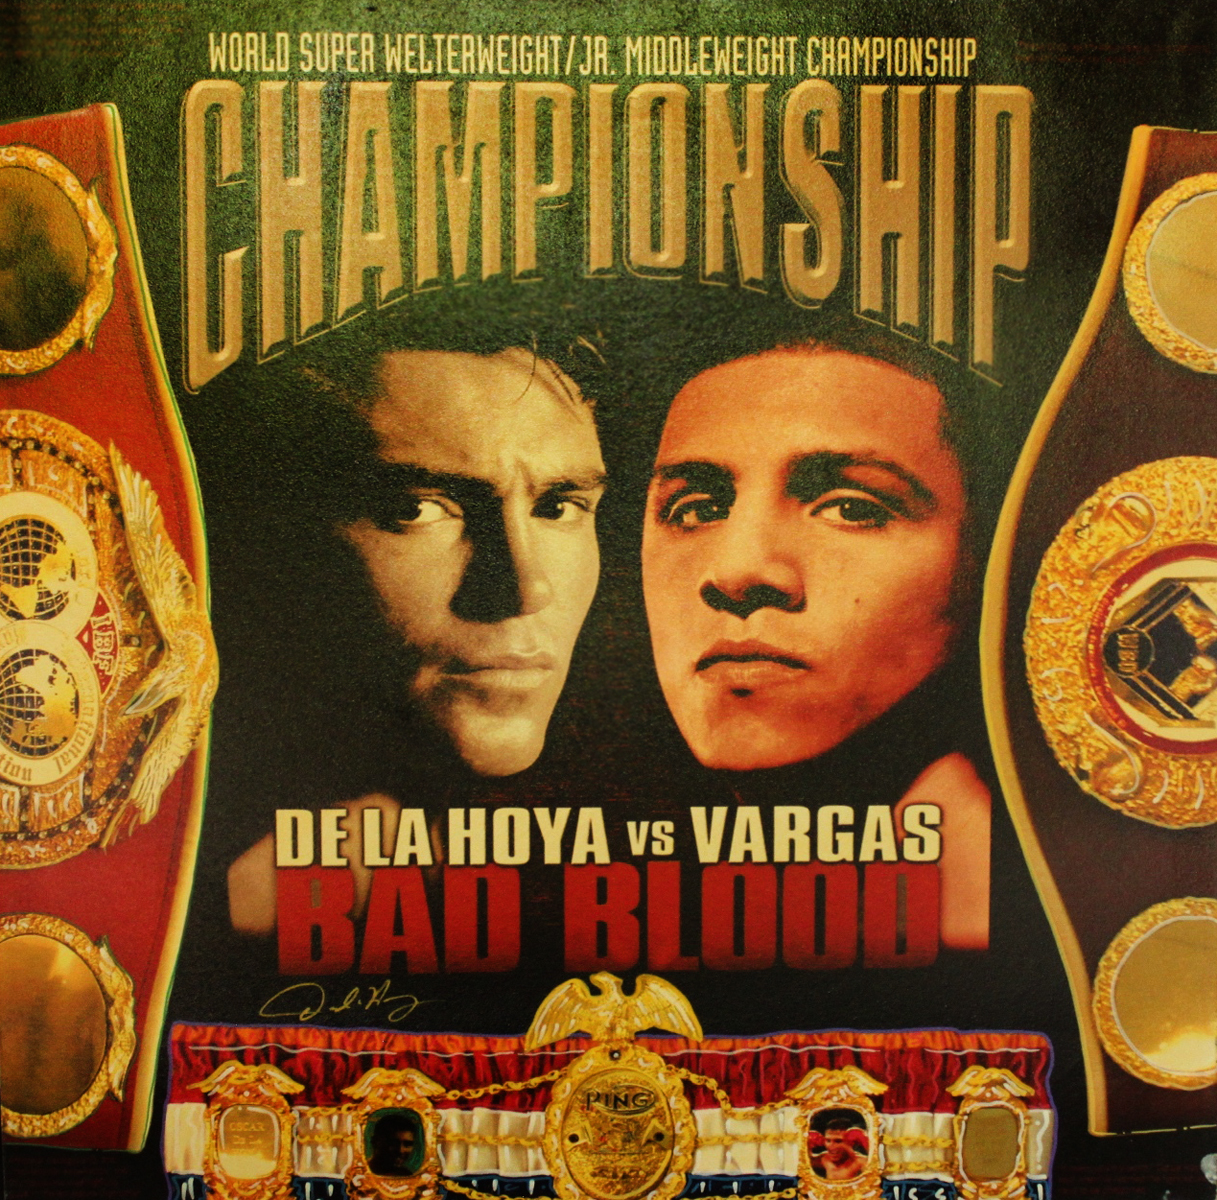 De La Hoya vs. Vargas - Bad Blood 2002